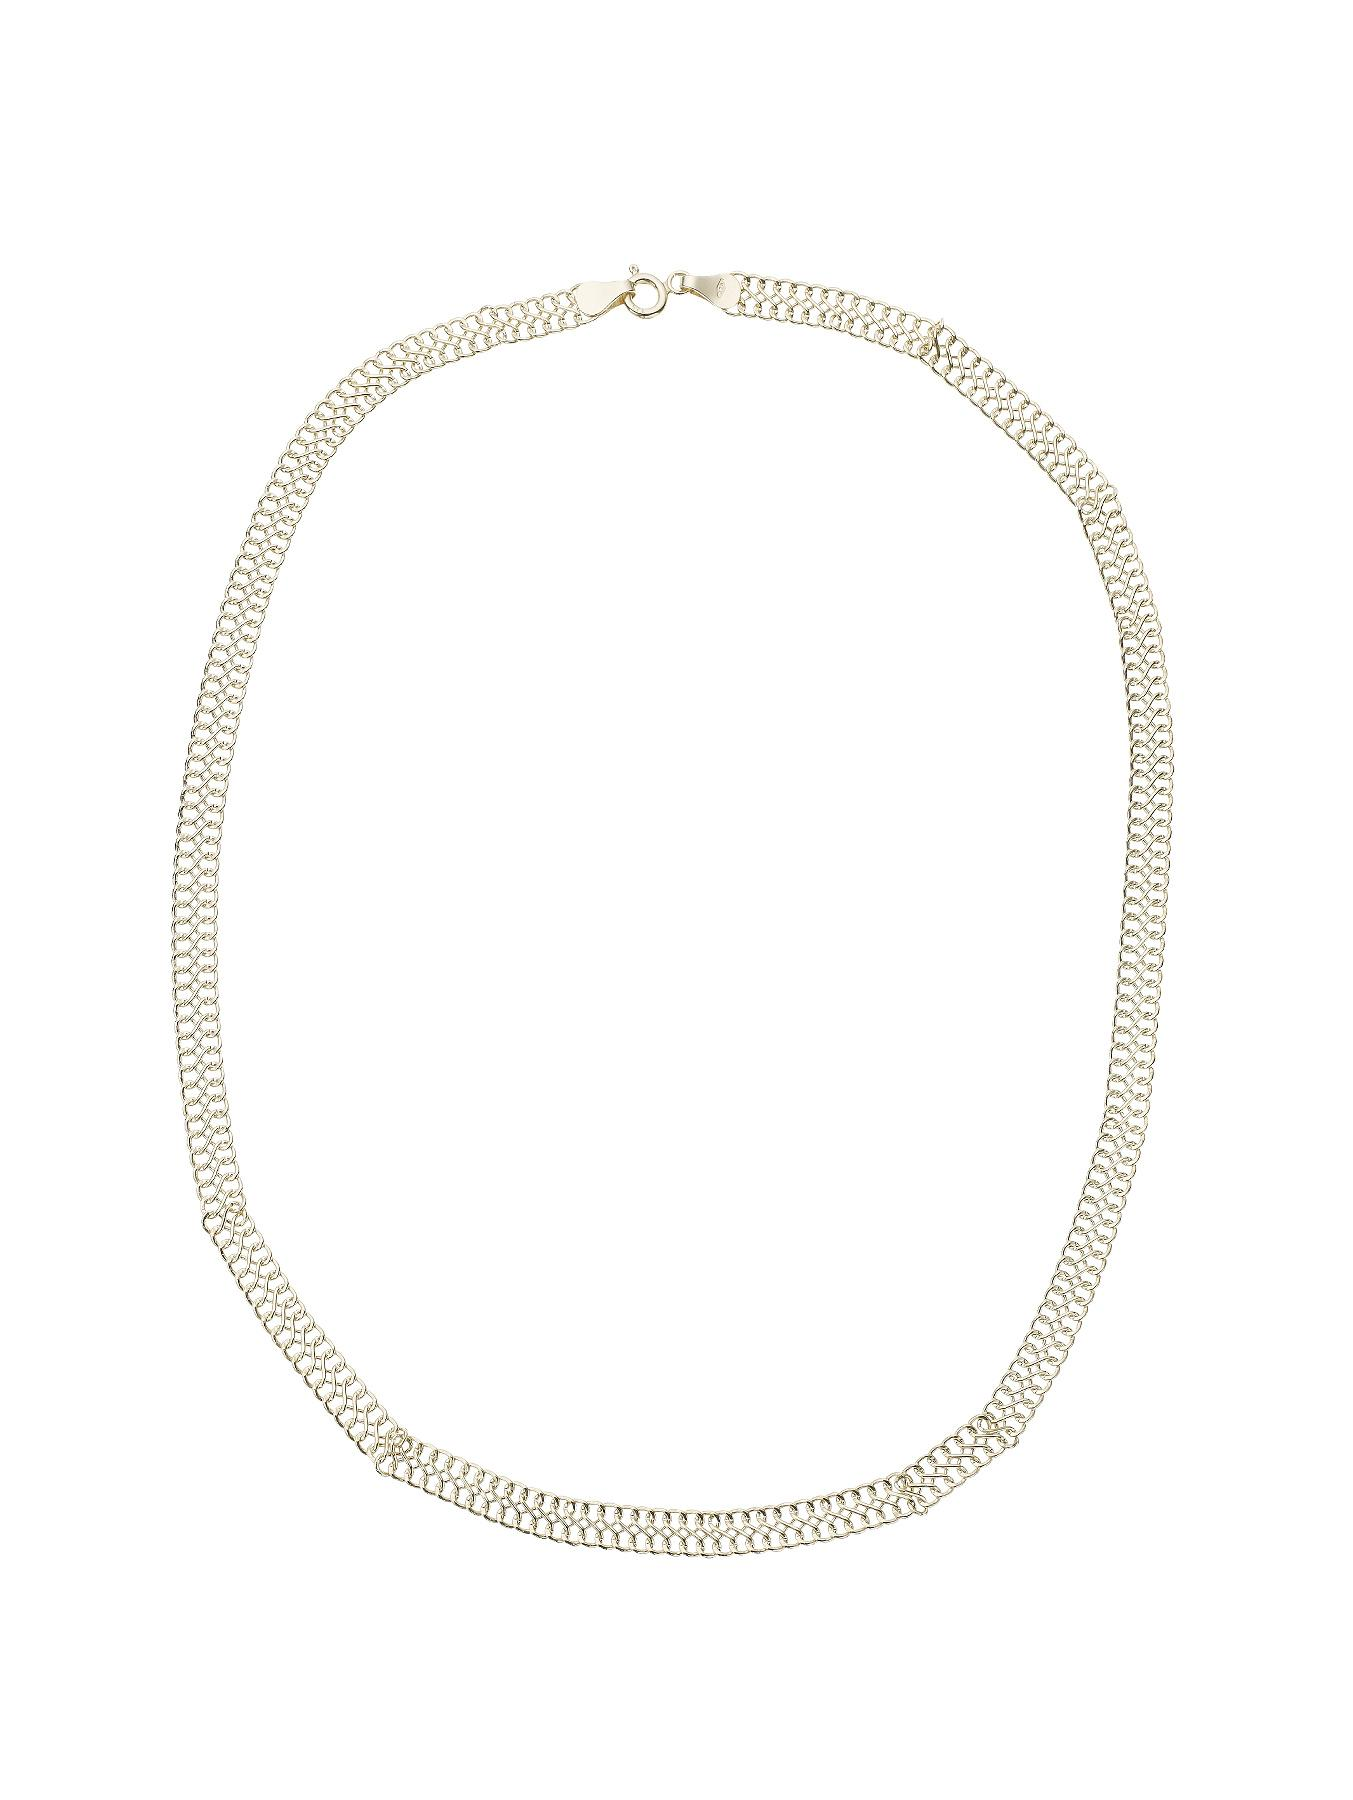 The Gold Collection 9-Carat Yellow Gold Double Row Fancy Chain